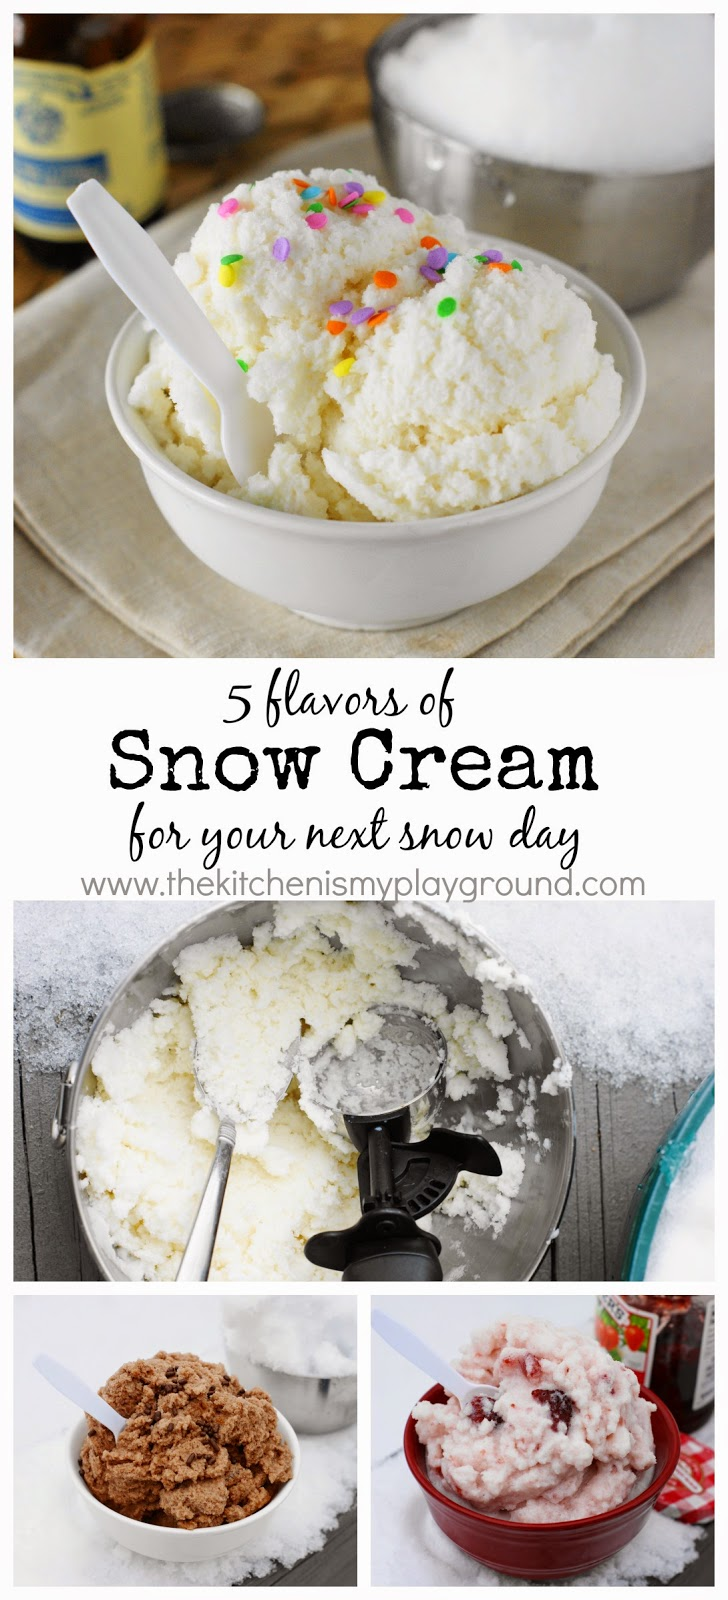 5 Flavors of Snow Cream for Your Next Snow Day